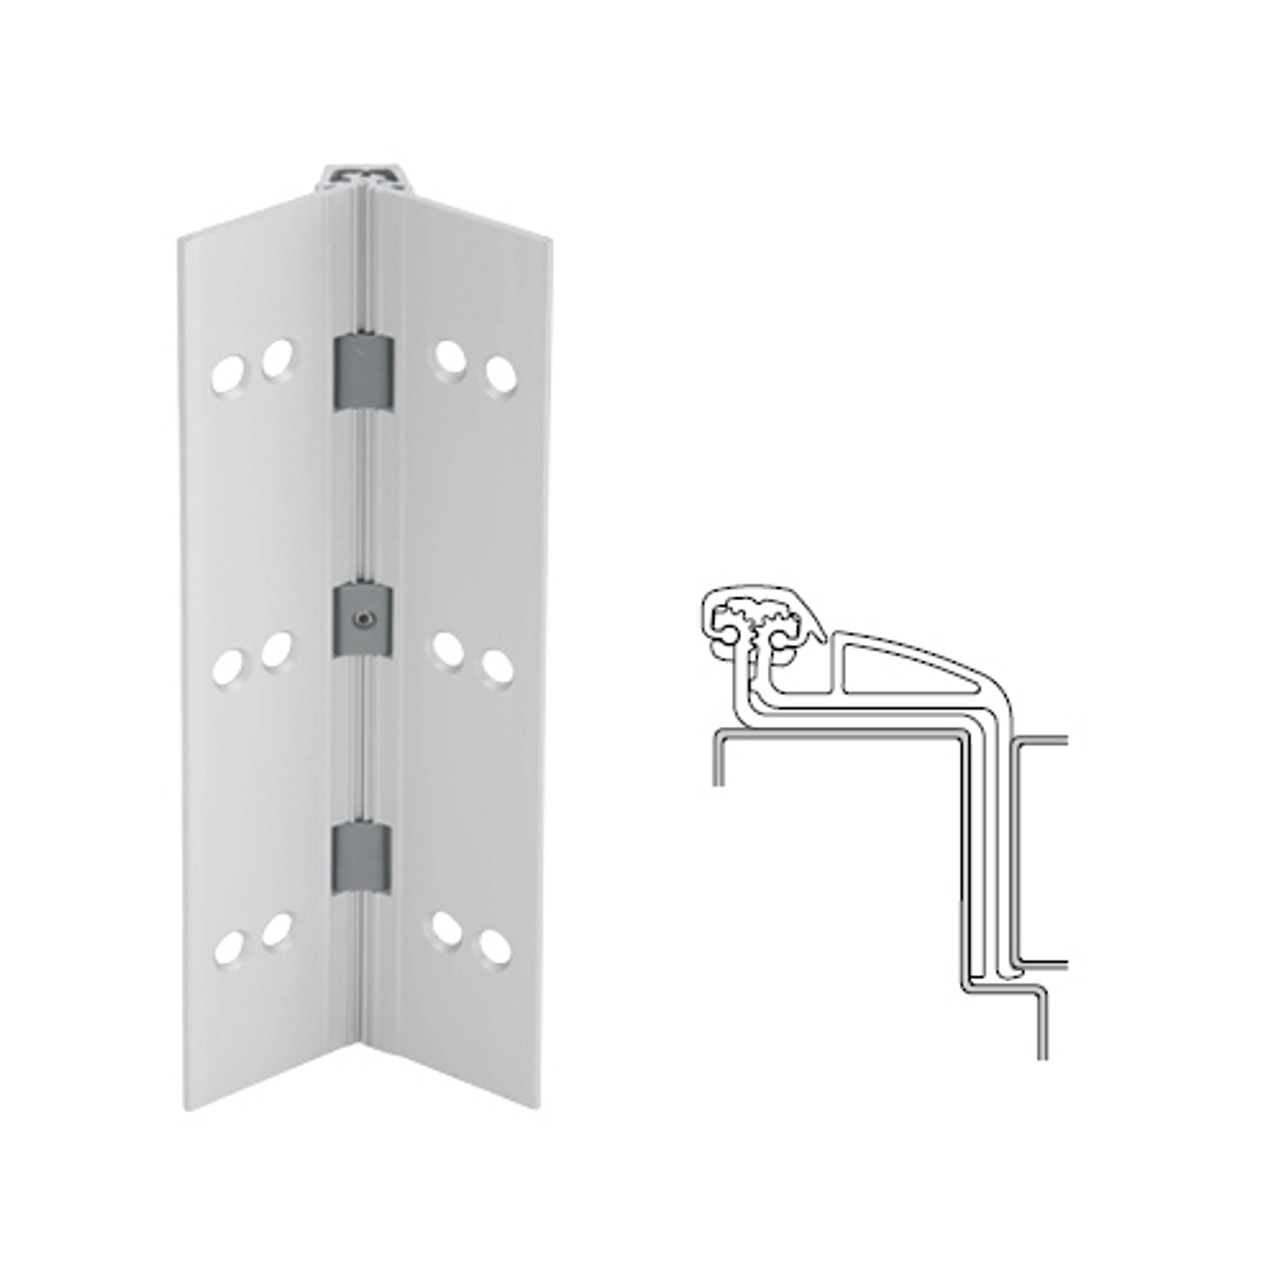 041XY-US28-83-TFWD IVES Full Mortise Continuous Geared Hinges with Thread Forming Screws in Satin Aluminum